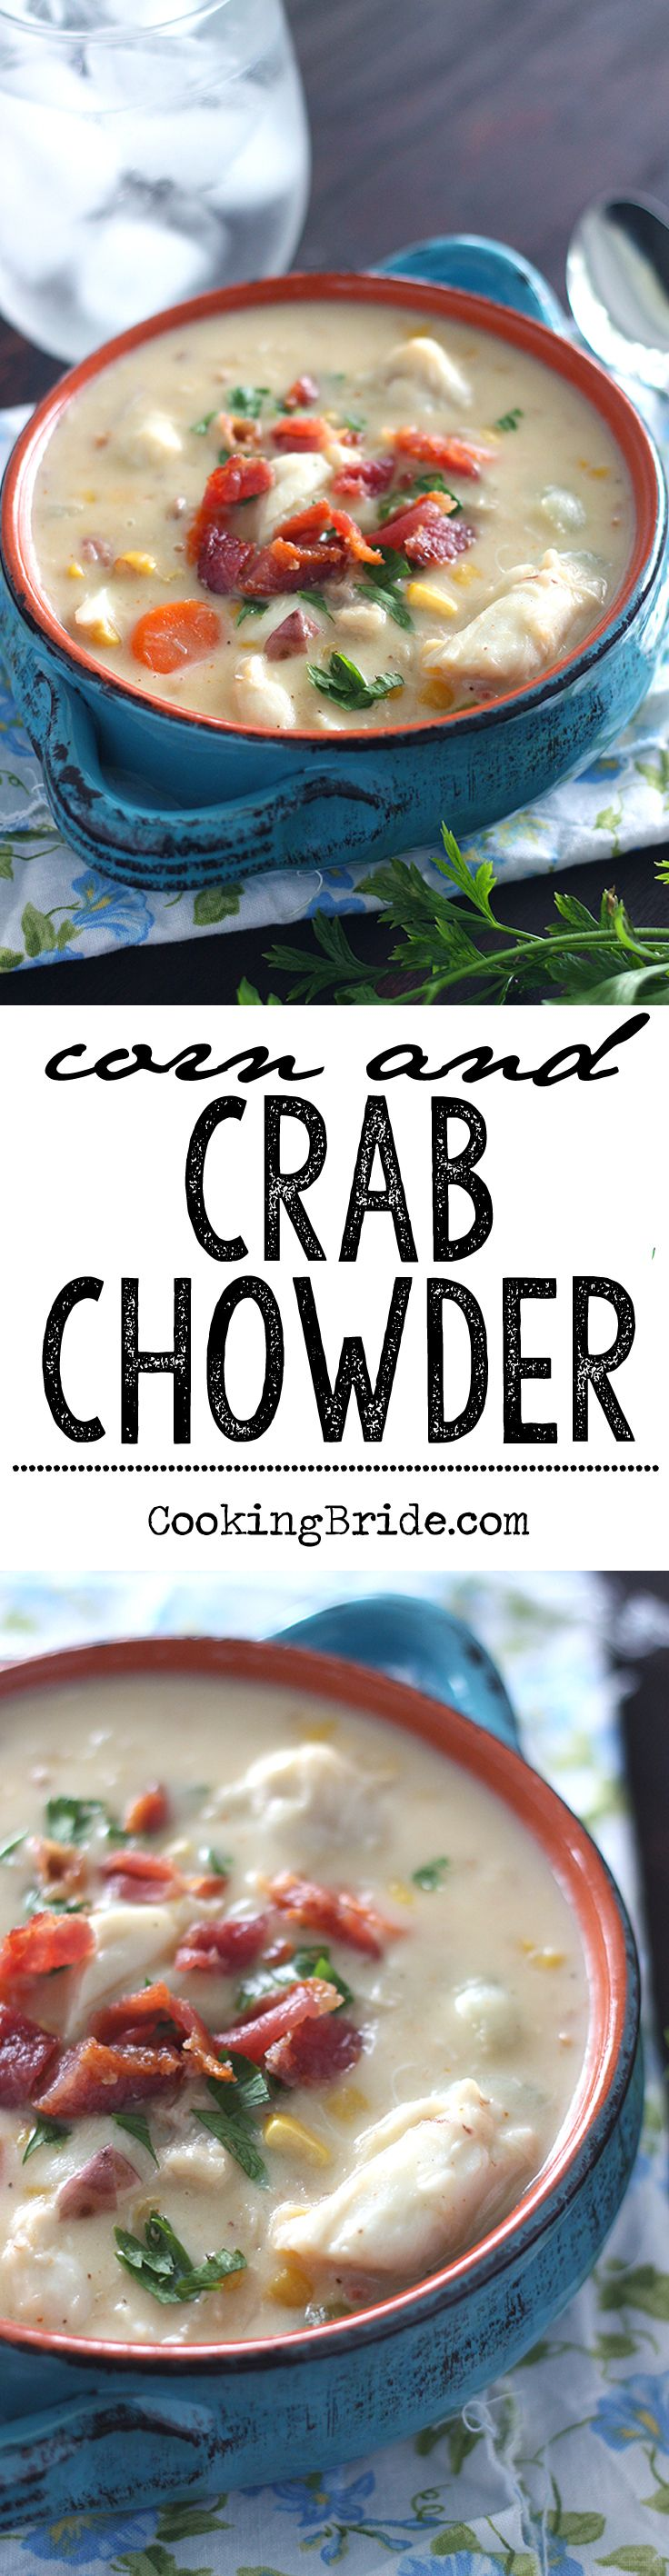 Luscious corn and crab chowder combines lump and claw crab meat, bacon, vegetables, seasonings, and cream for a velvety smooth dish.